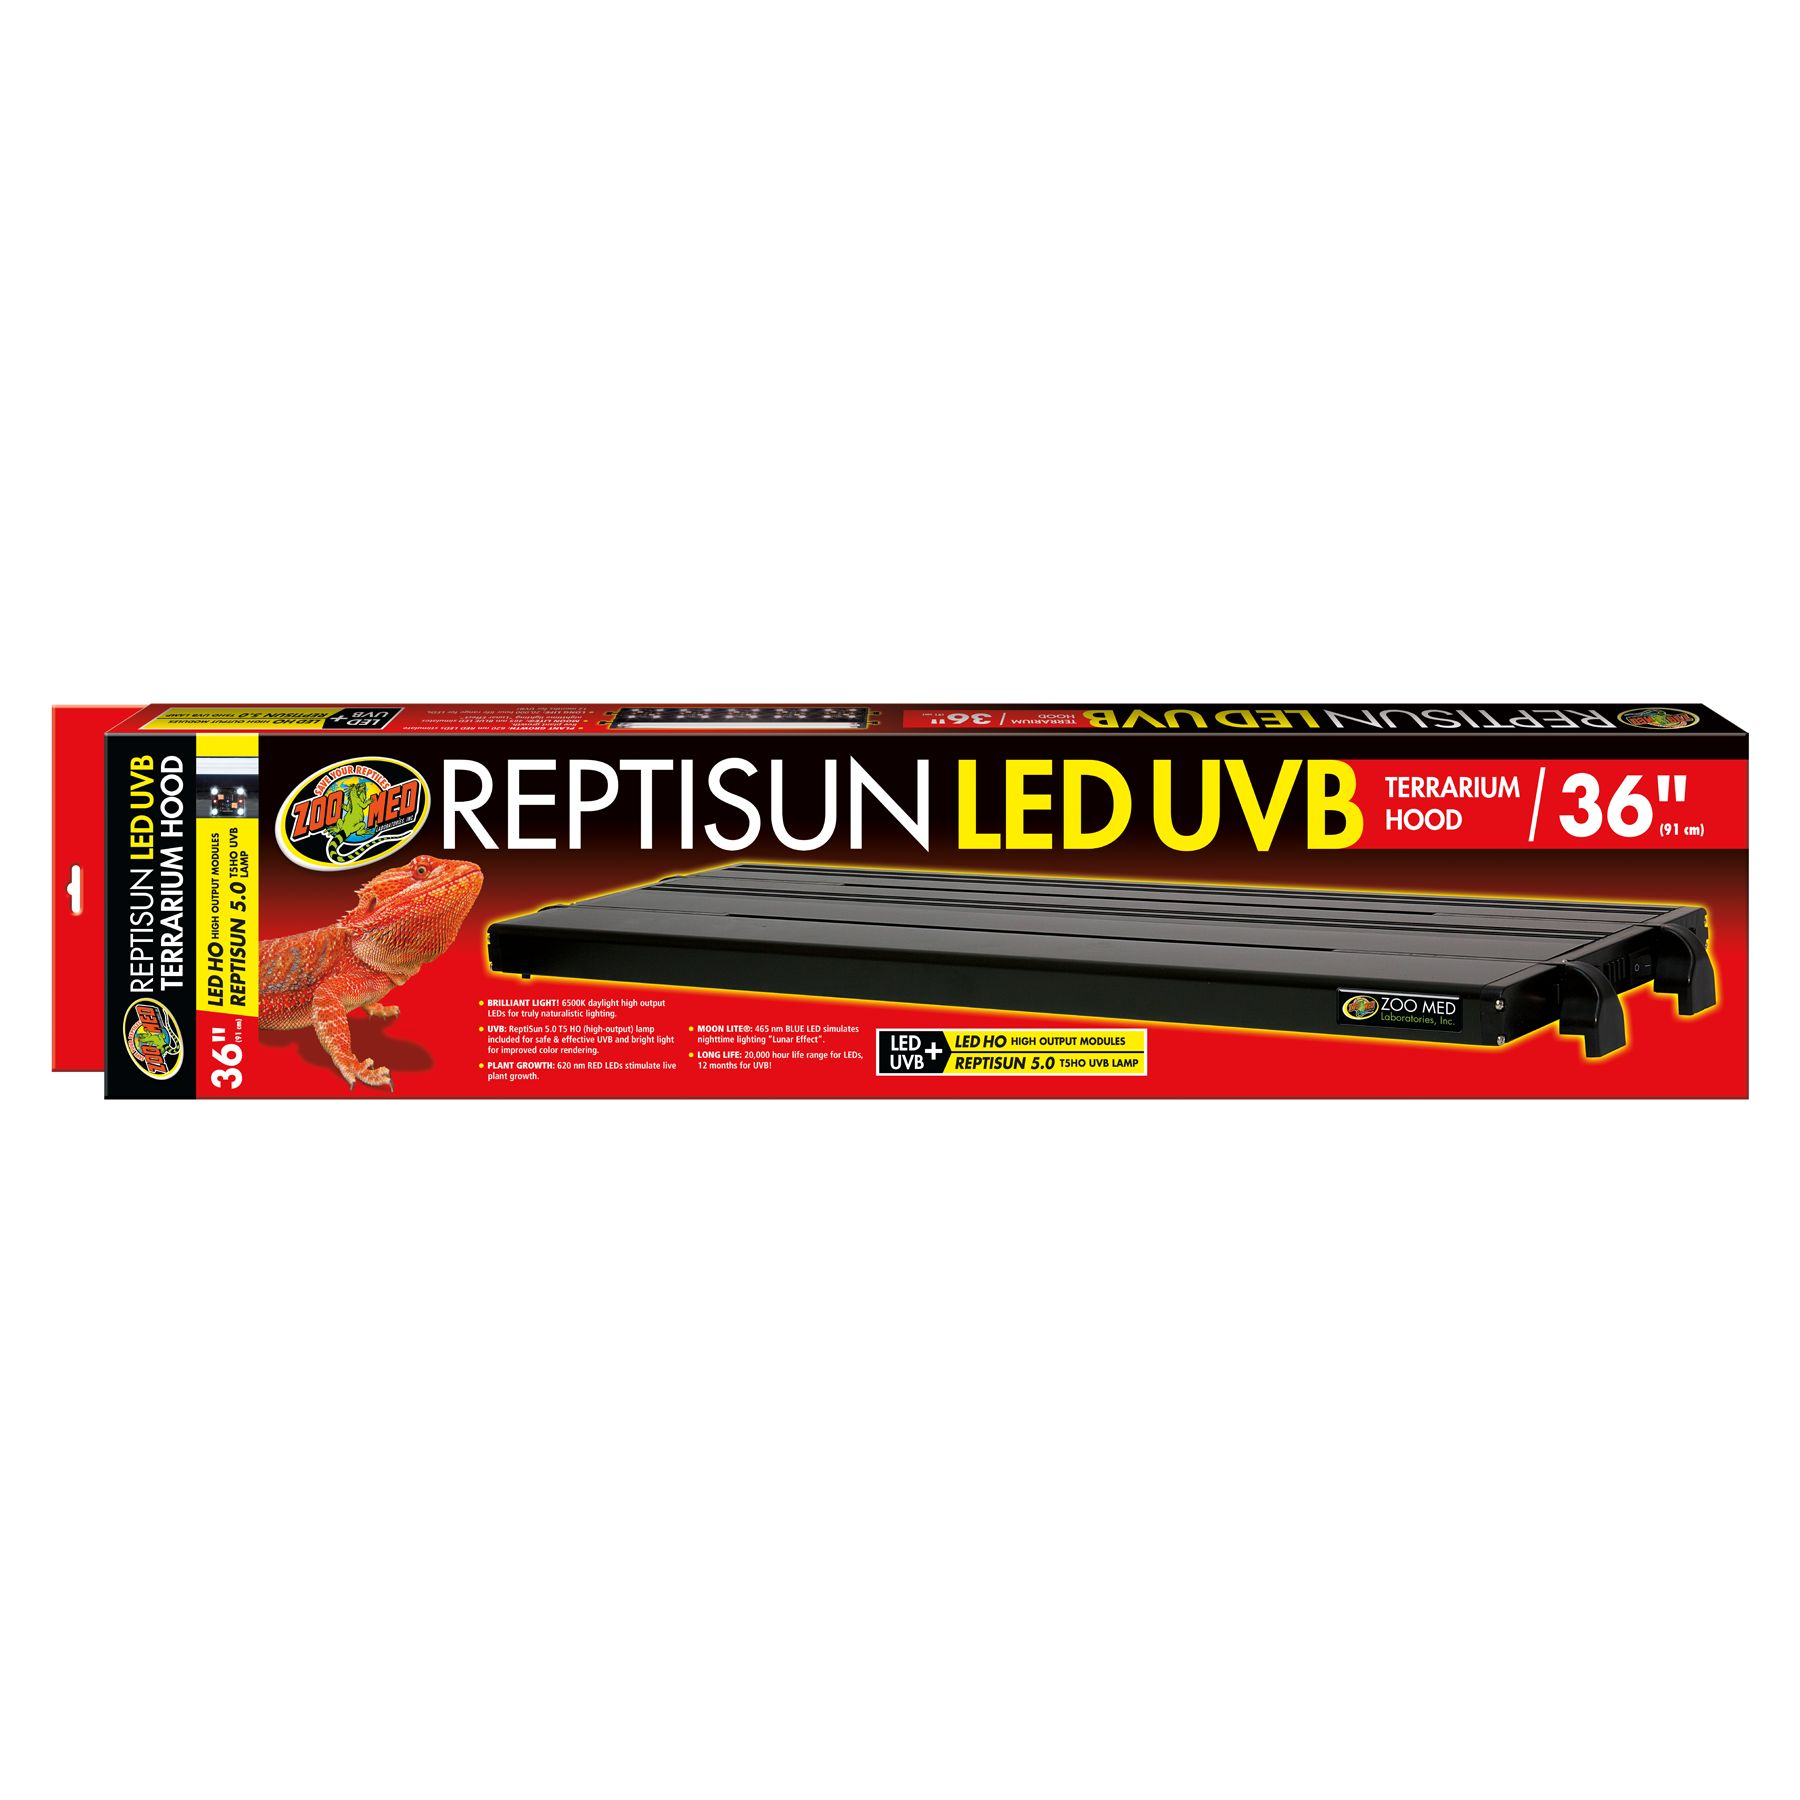 Zoo Med, ReptiSun LED UVB Reptile Terrarium Hood size: 36 in 5249775